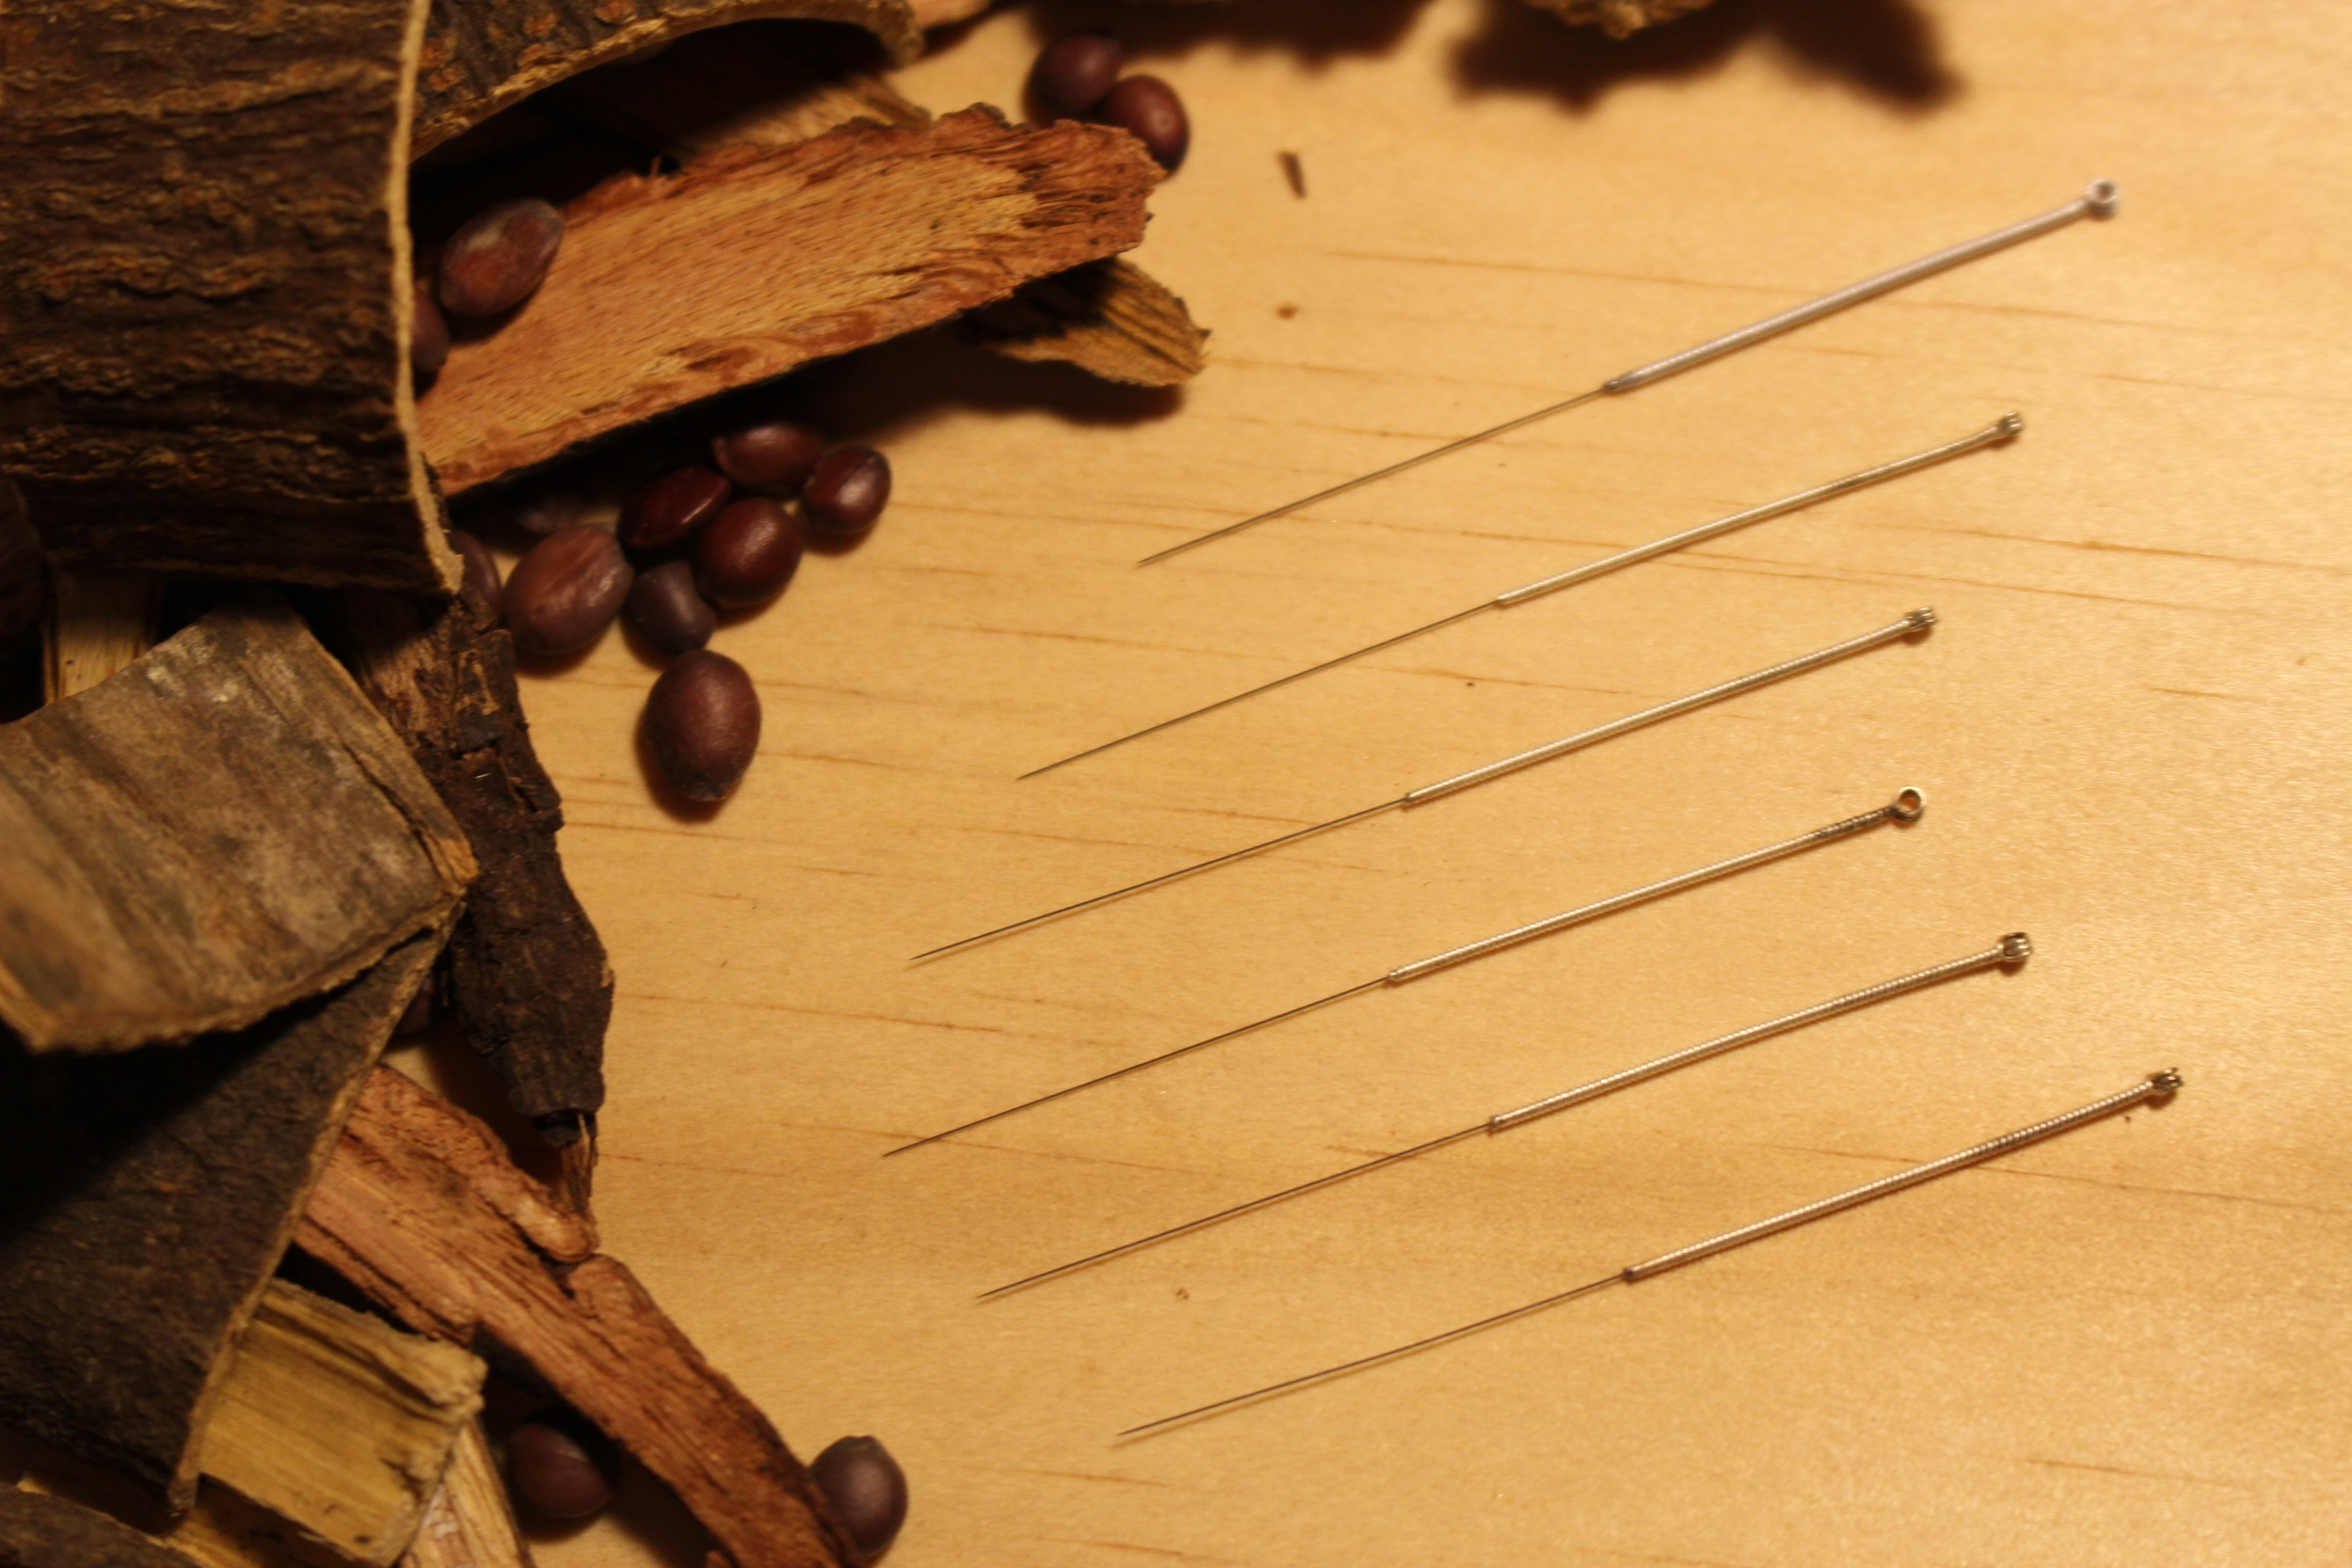 Acupuncture needles & Chinese herbs